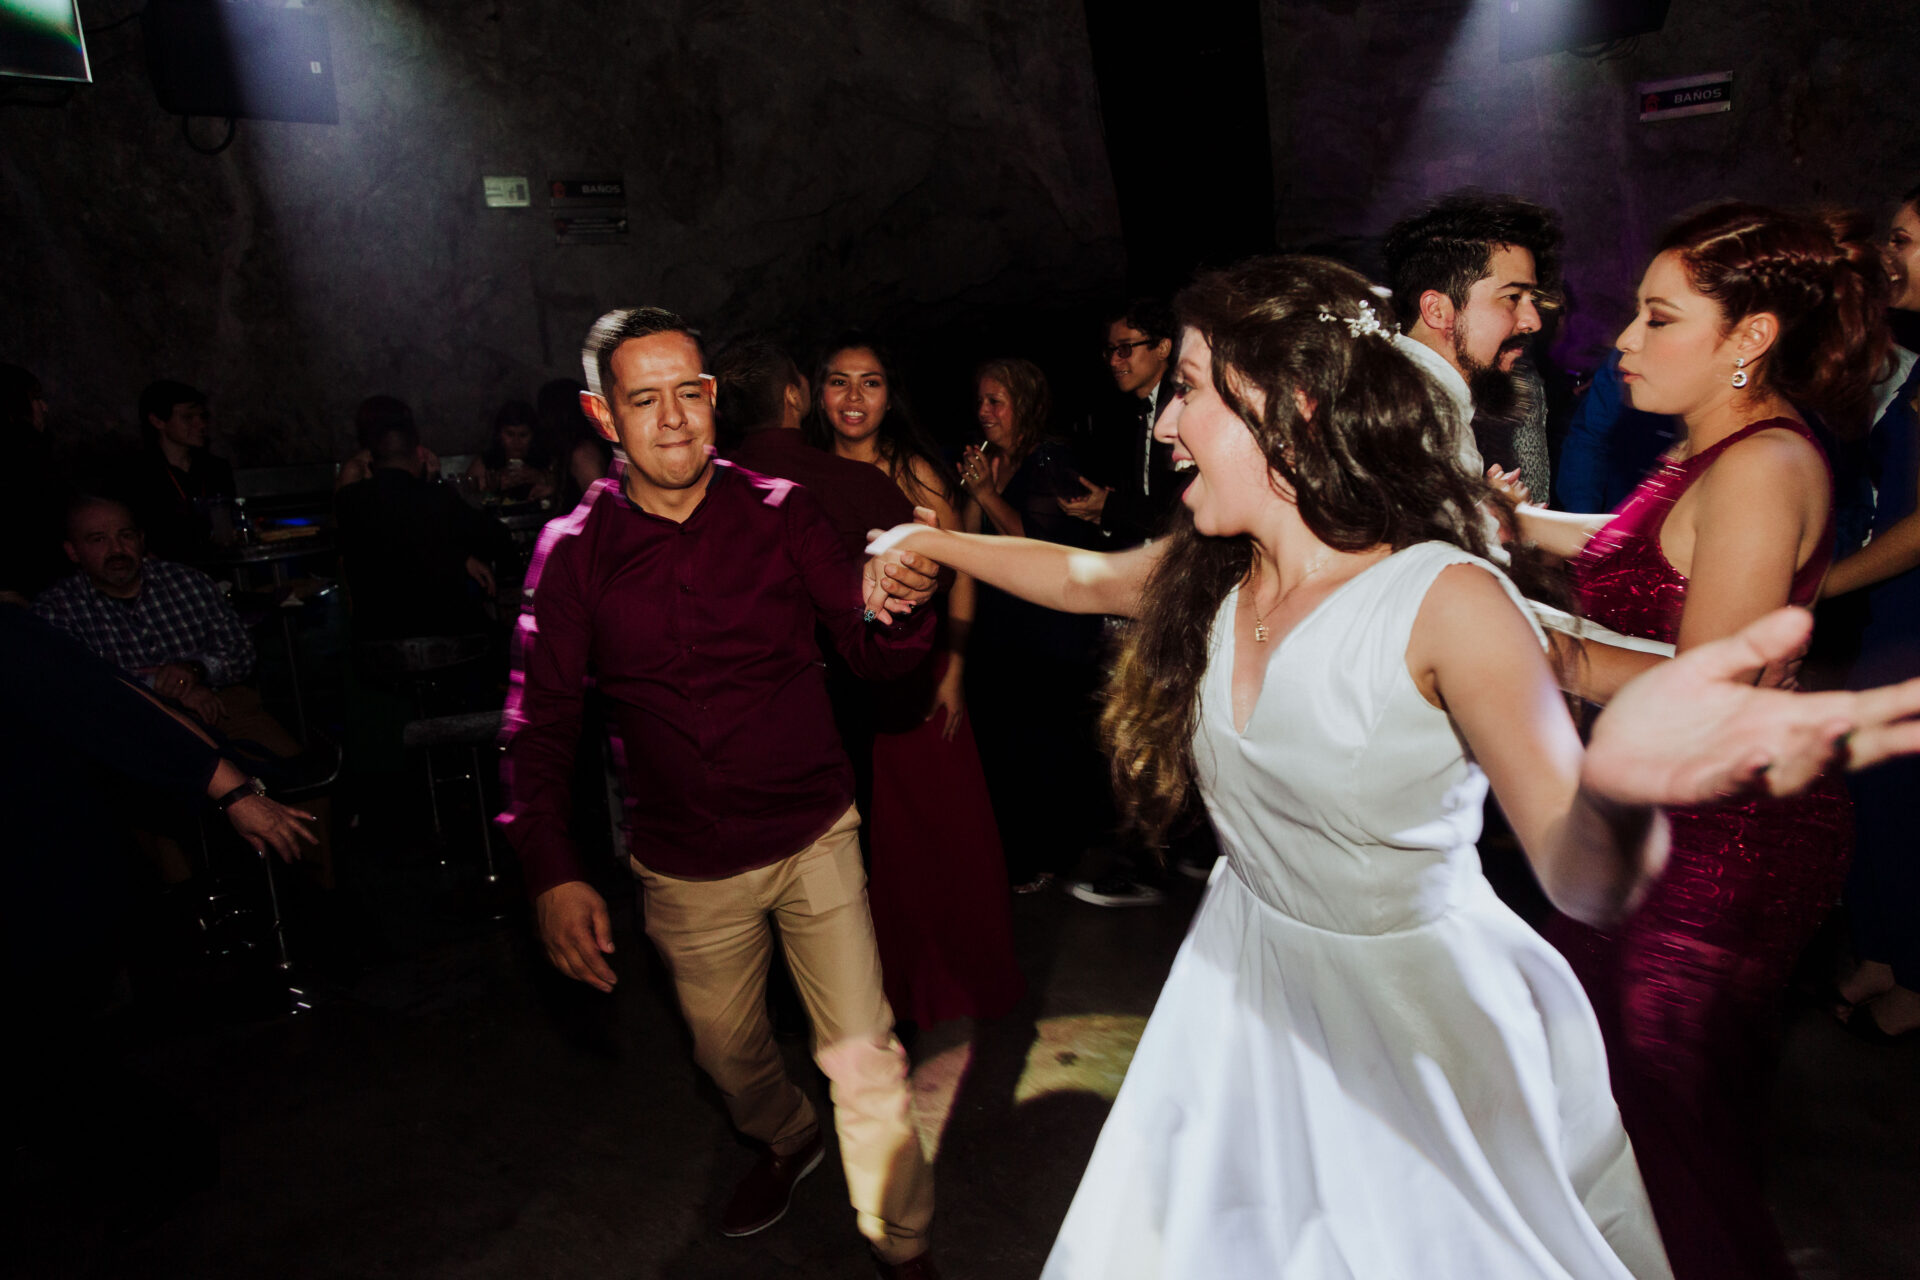 javier_noriega_fotografo_bodas_la_mina_club_zacatecas_wedding_photographer31